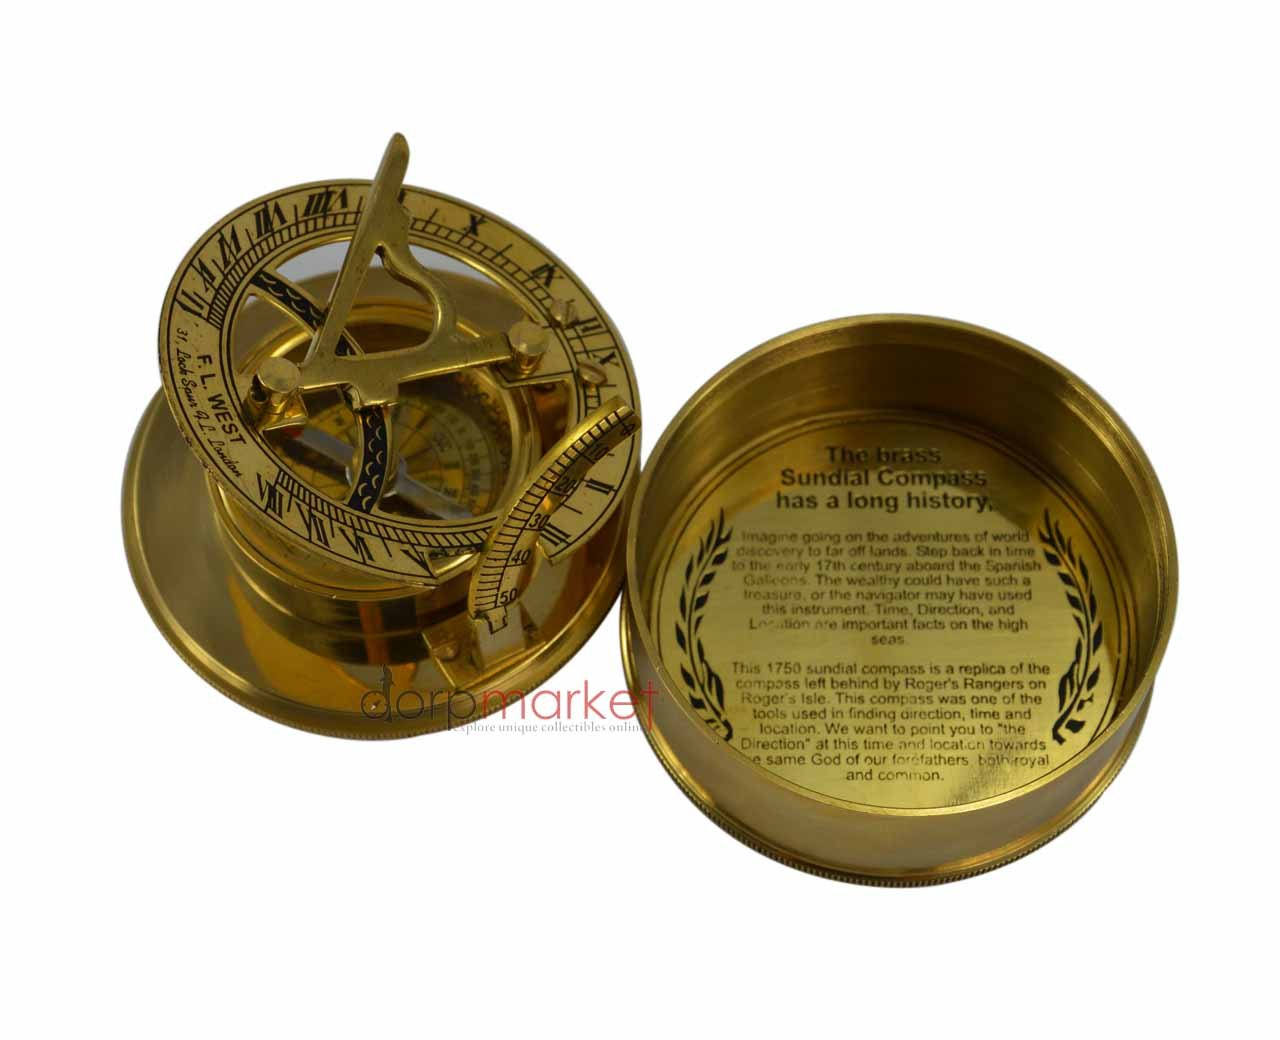 Dorpmarket Handmade Box Sundial Compass with Latitude Adjustment Natural Sine Anchor Symblol Compass